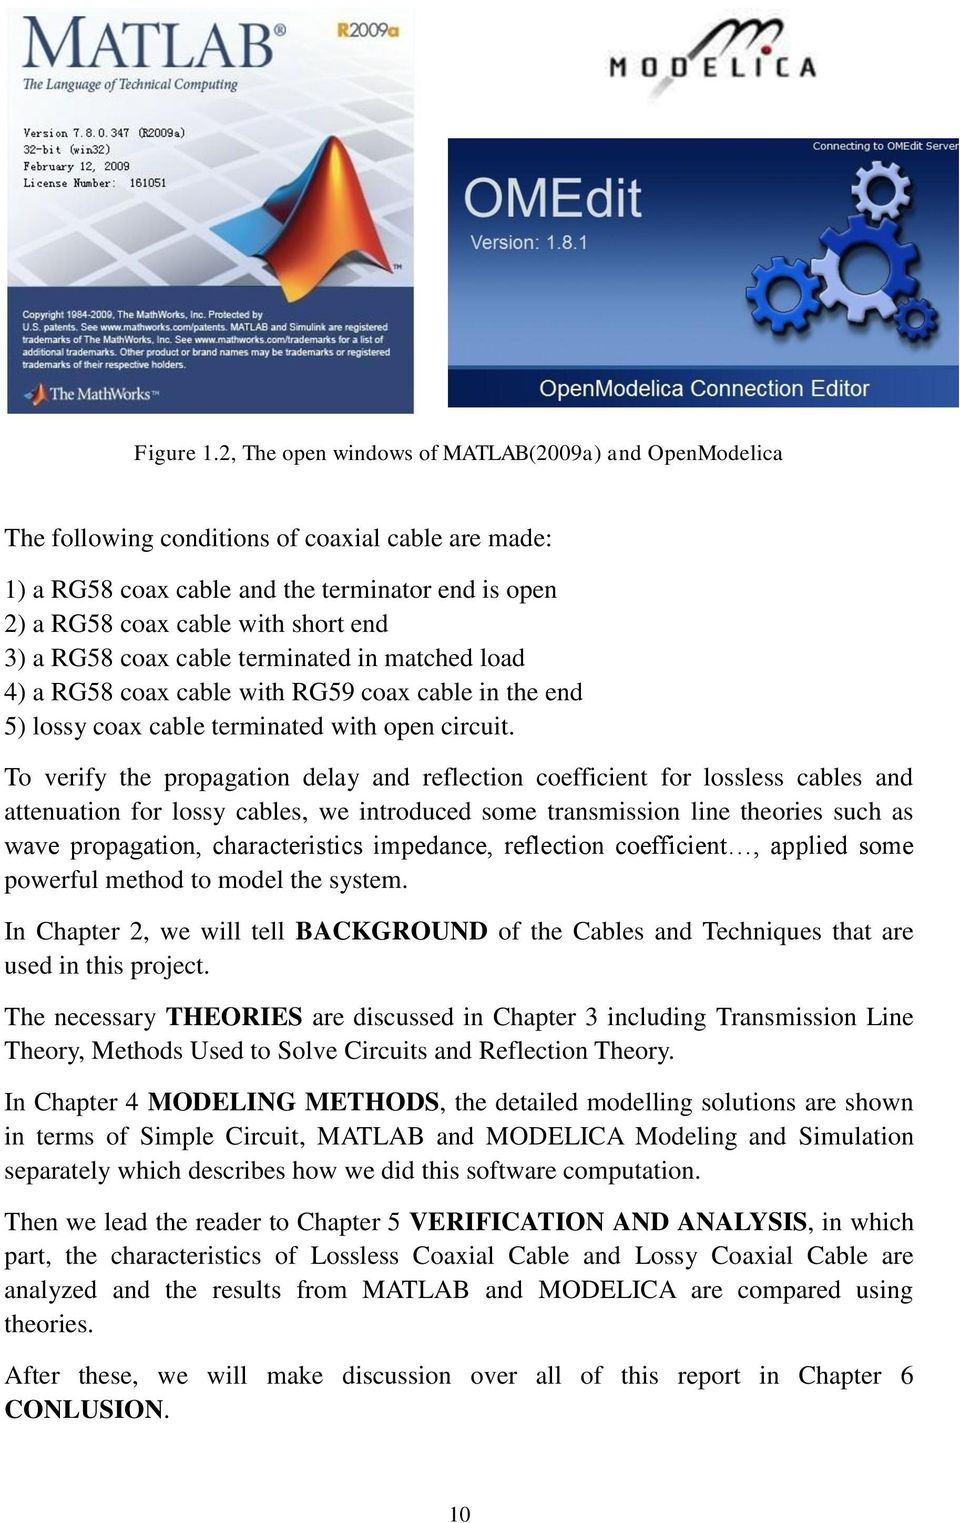 Coaxial Cable Modeling And Verification Pdf Is There Anyway I Can Model This Simple Circuit In Matlab Rg58 Coax Terminated Matched Load 4 A With Rg59